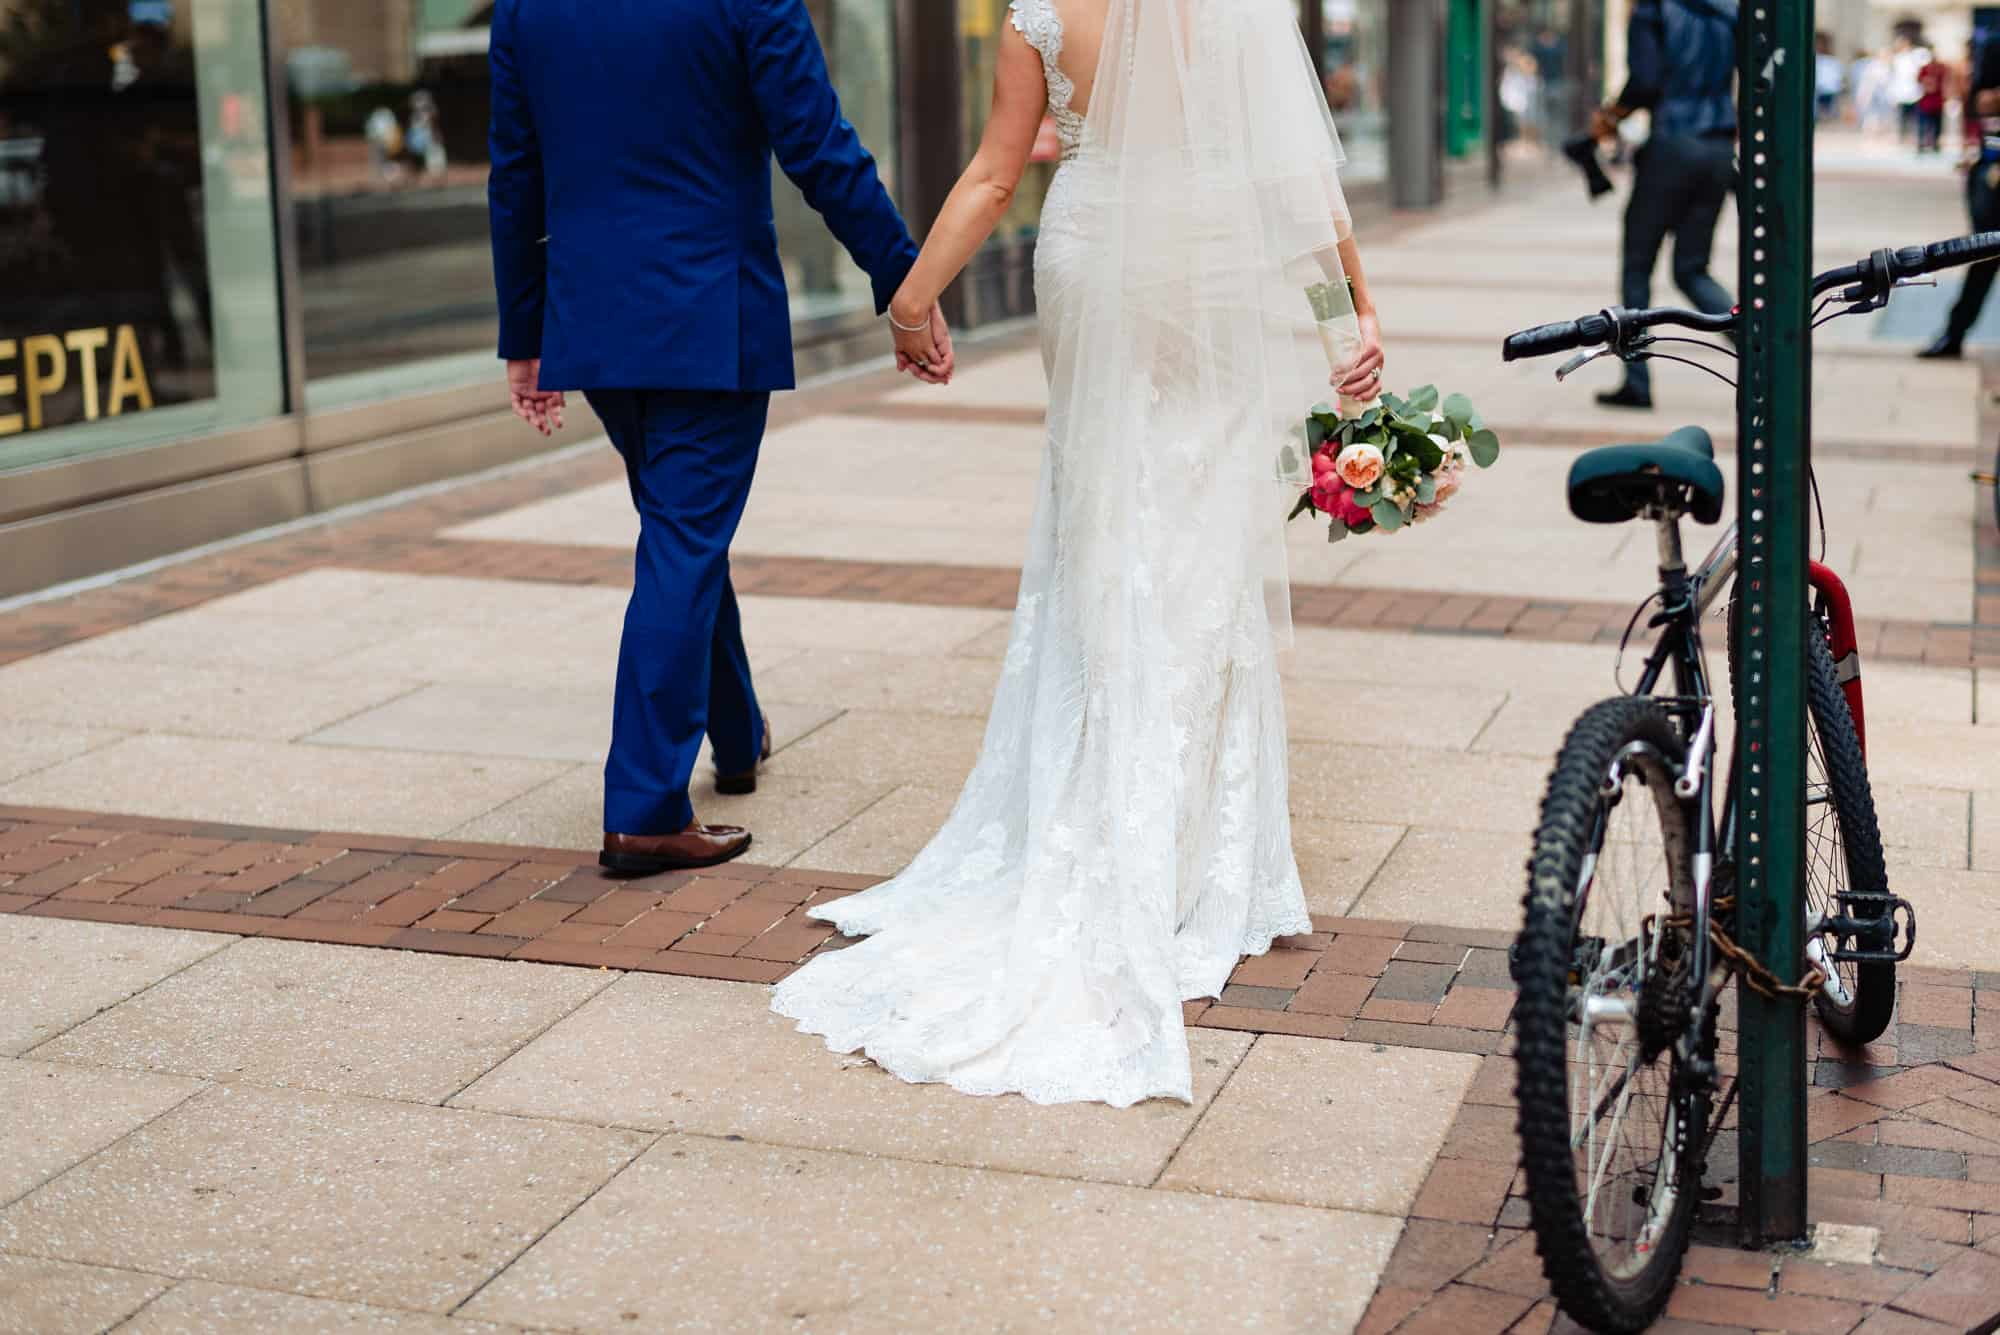 wedding day, the back of the bride and groom holding hands walking down the streets of Philadelphia